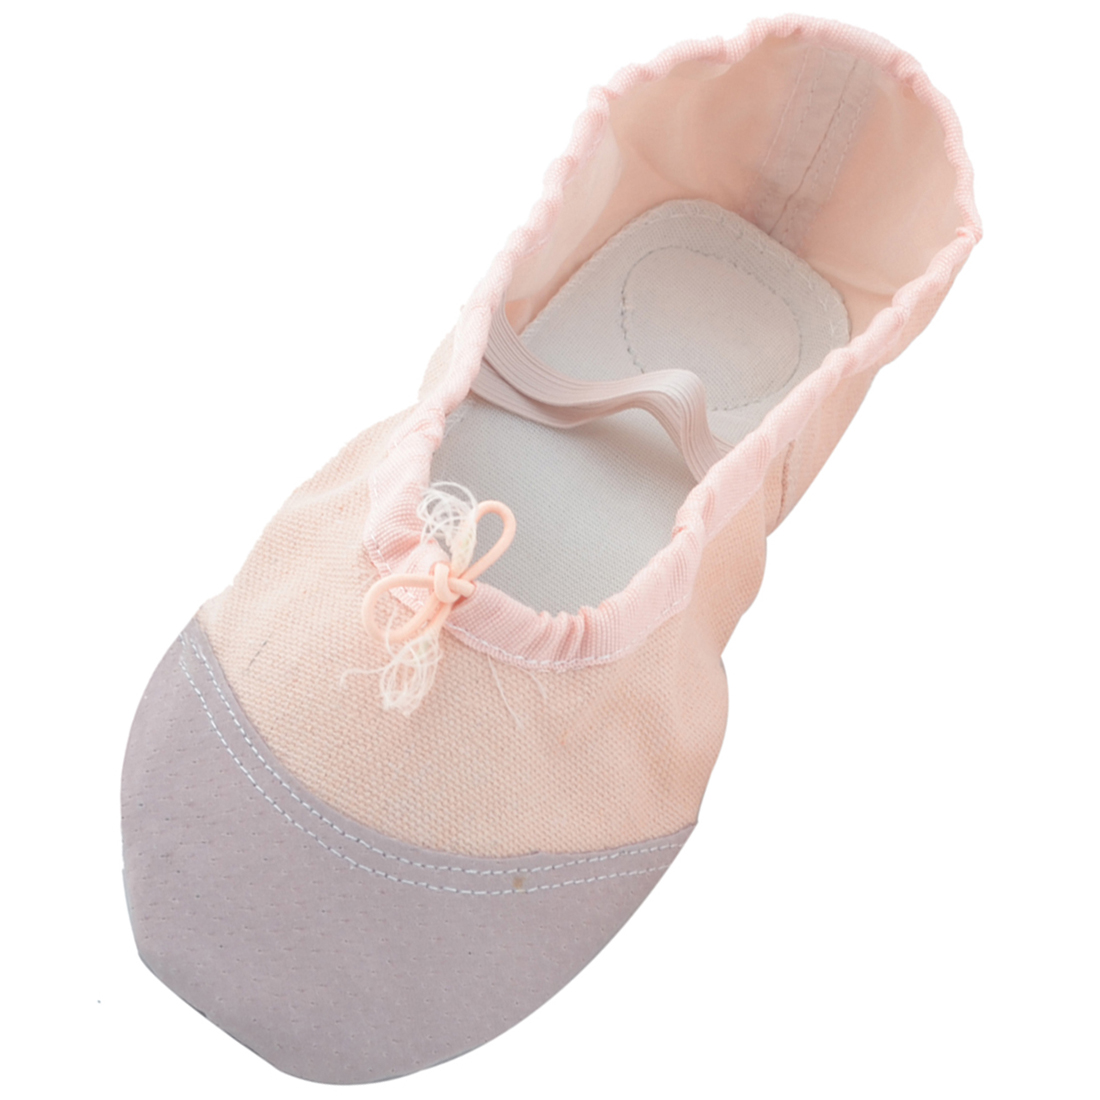 Lady Soft Canvas Elastic Cross Bands Flat Ballet Dancing Shoes Apricot Size 41 Pair